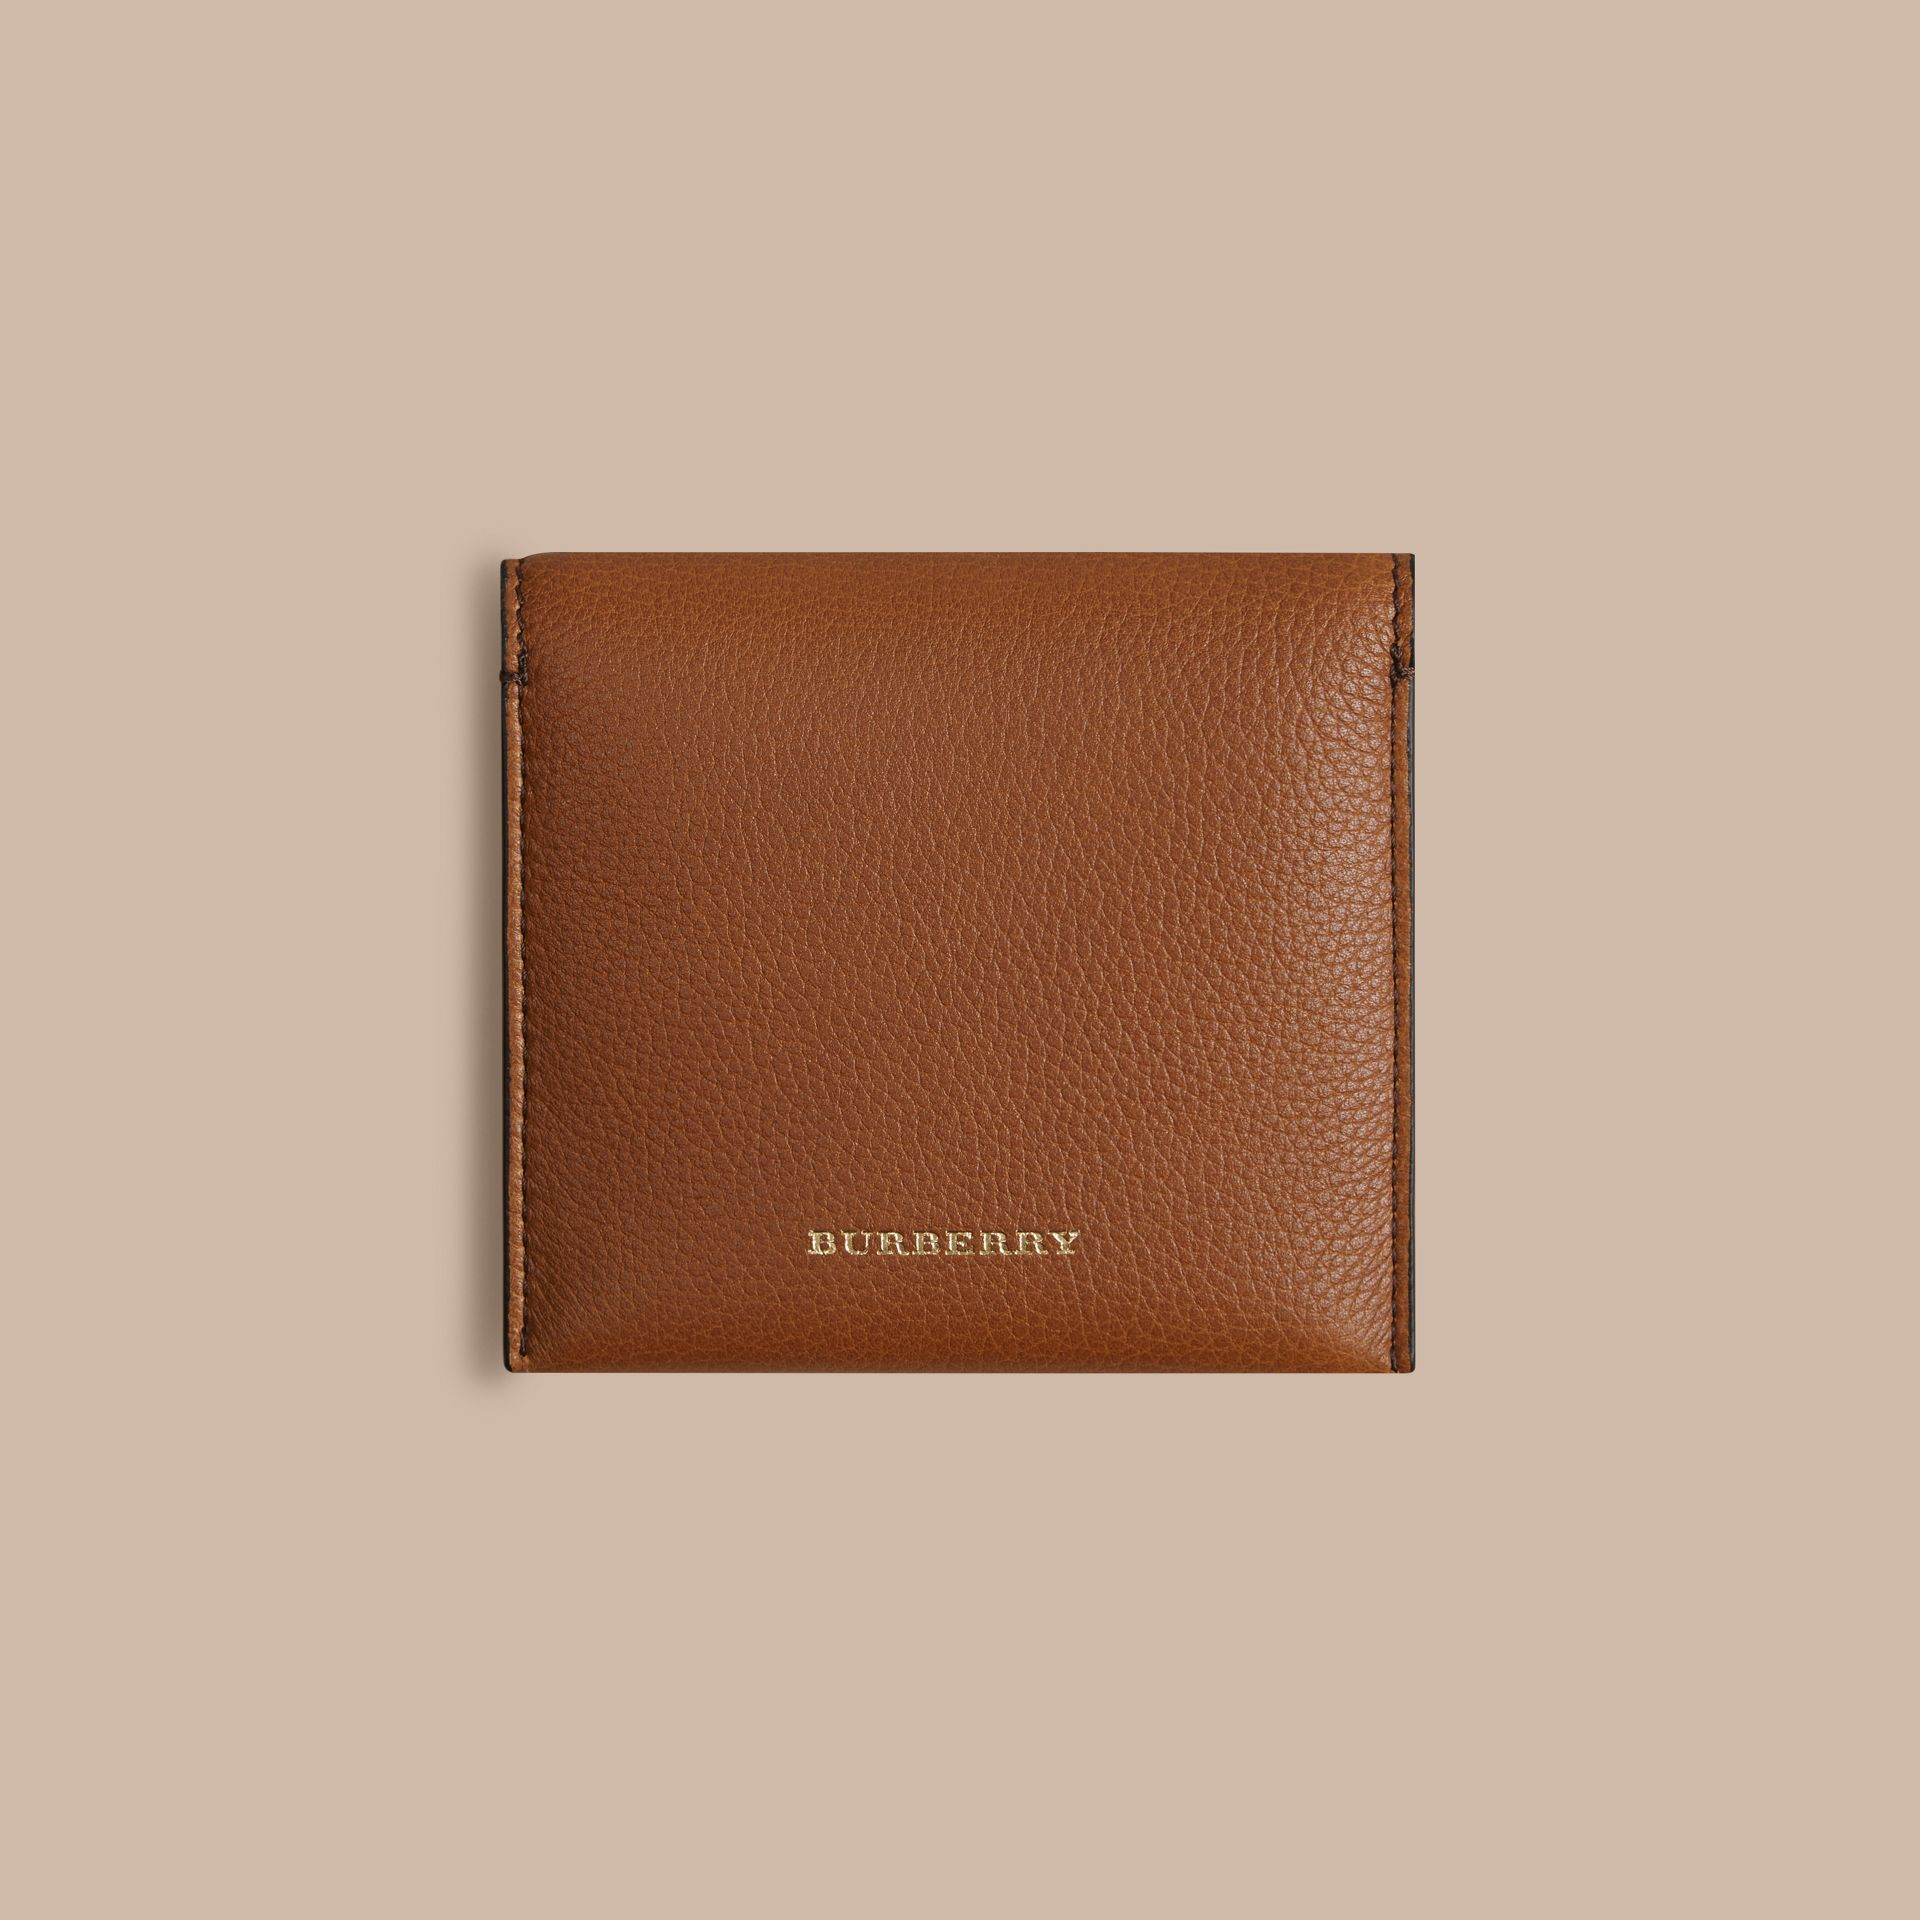 Grainy Leather Cufflink Case in Tan - Men | Burberry Hong Kong - gallery image 3